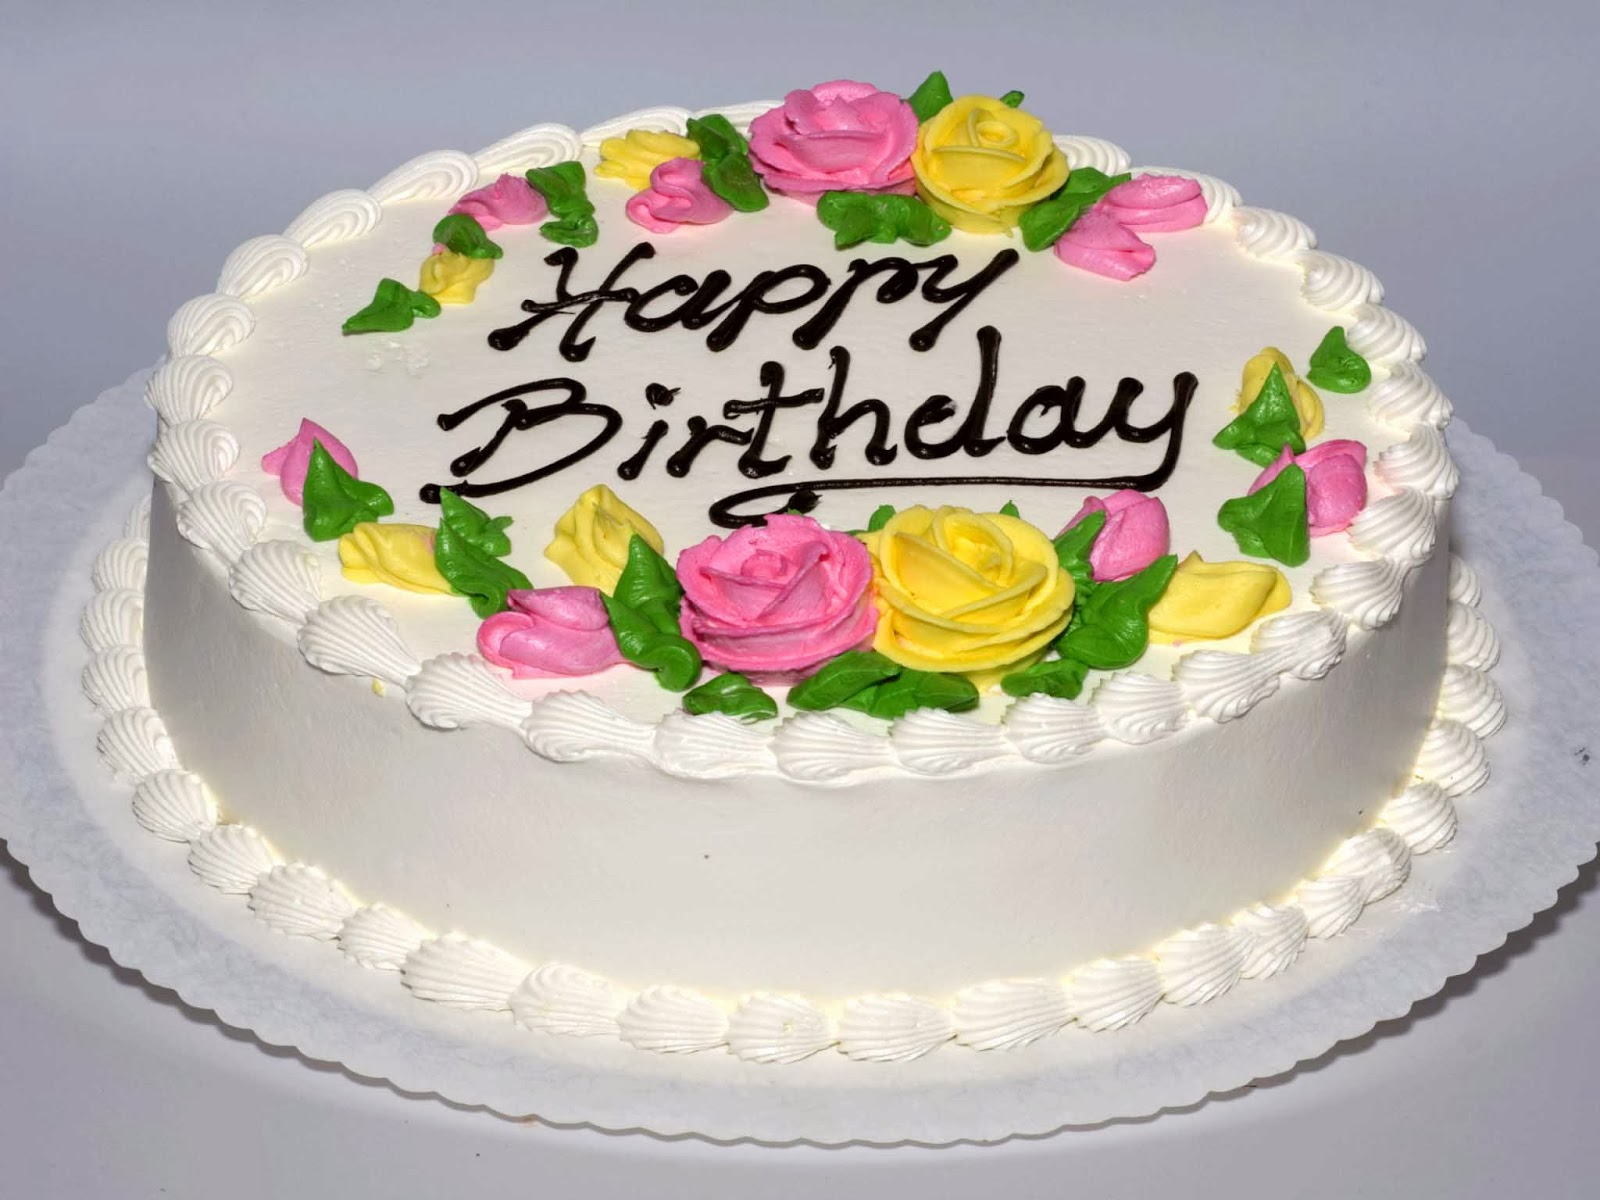 Download Birthday Cake Pictures Free : Lovable Images: Happy Birthday Greetings free download ...